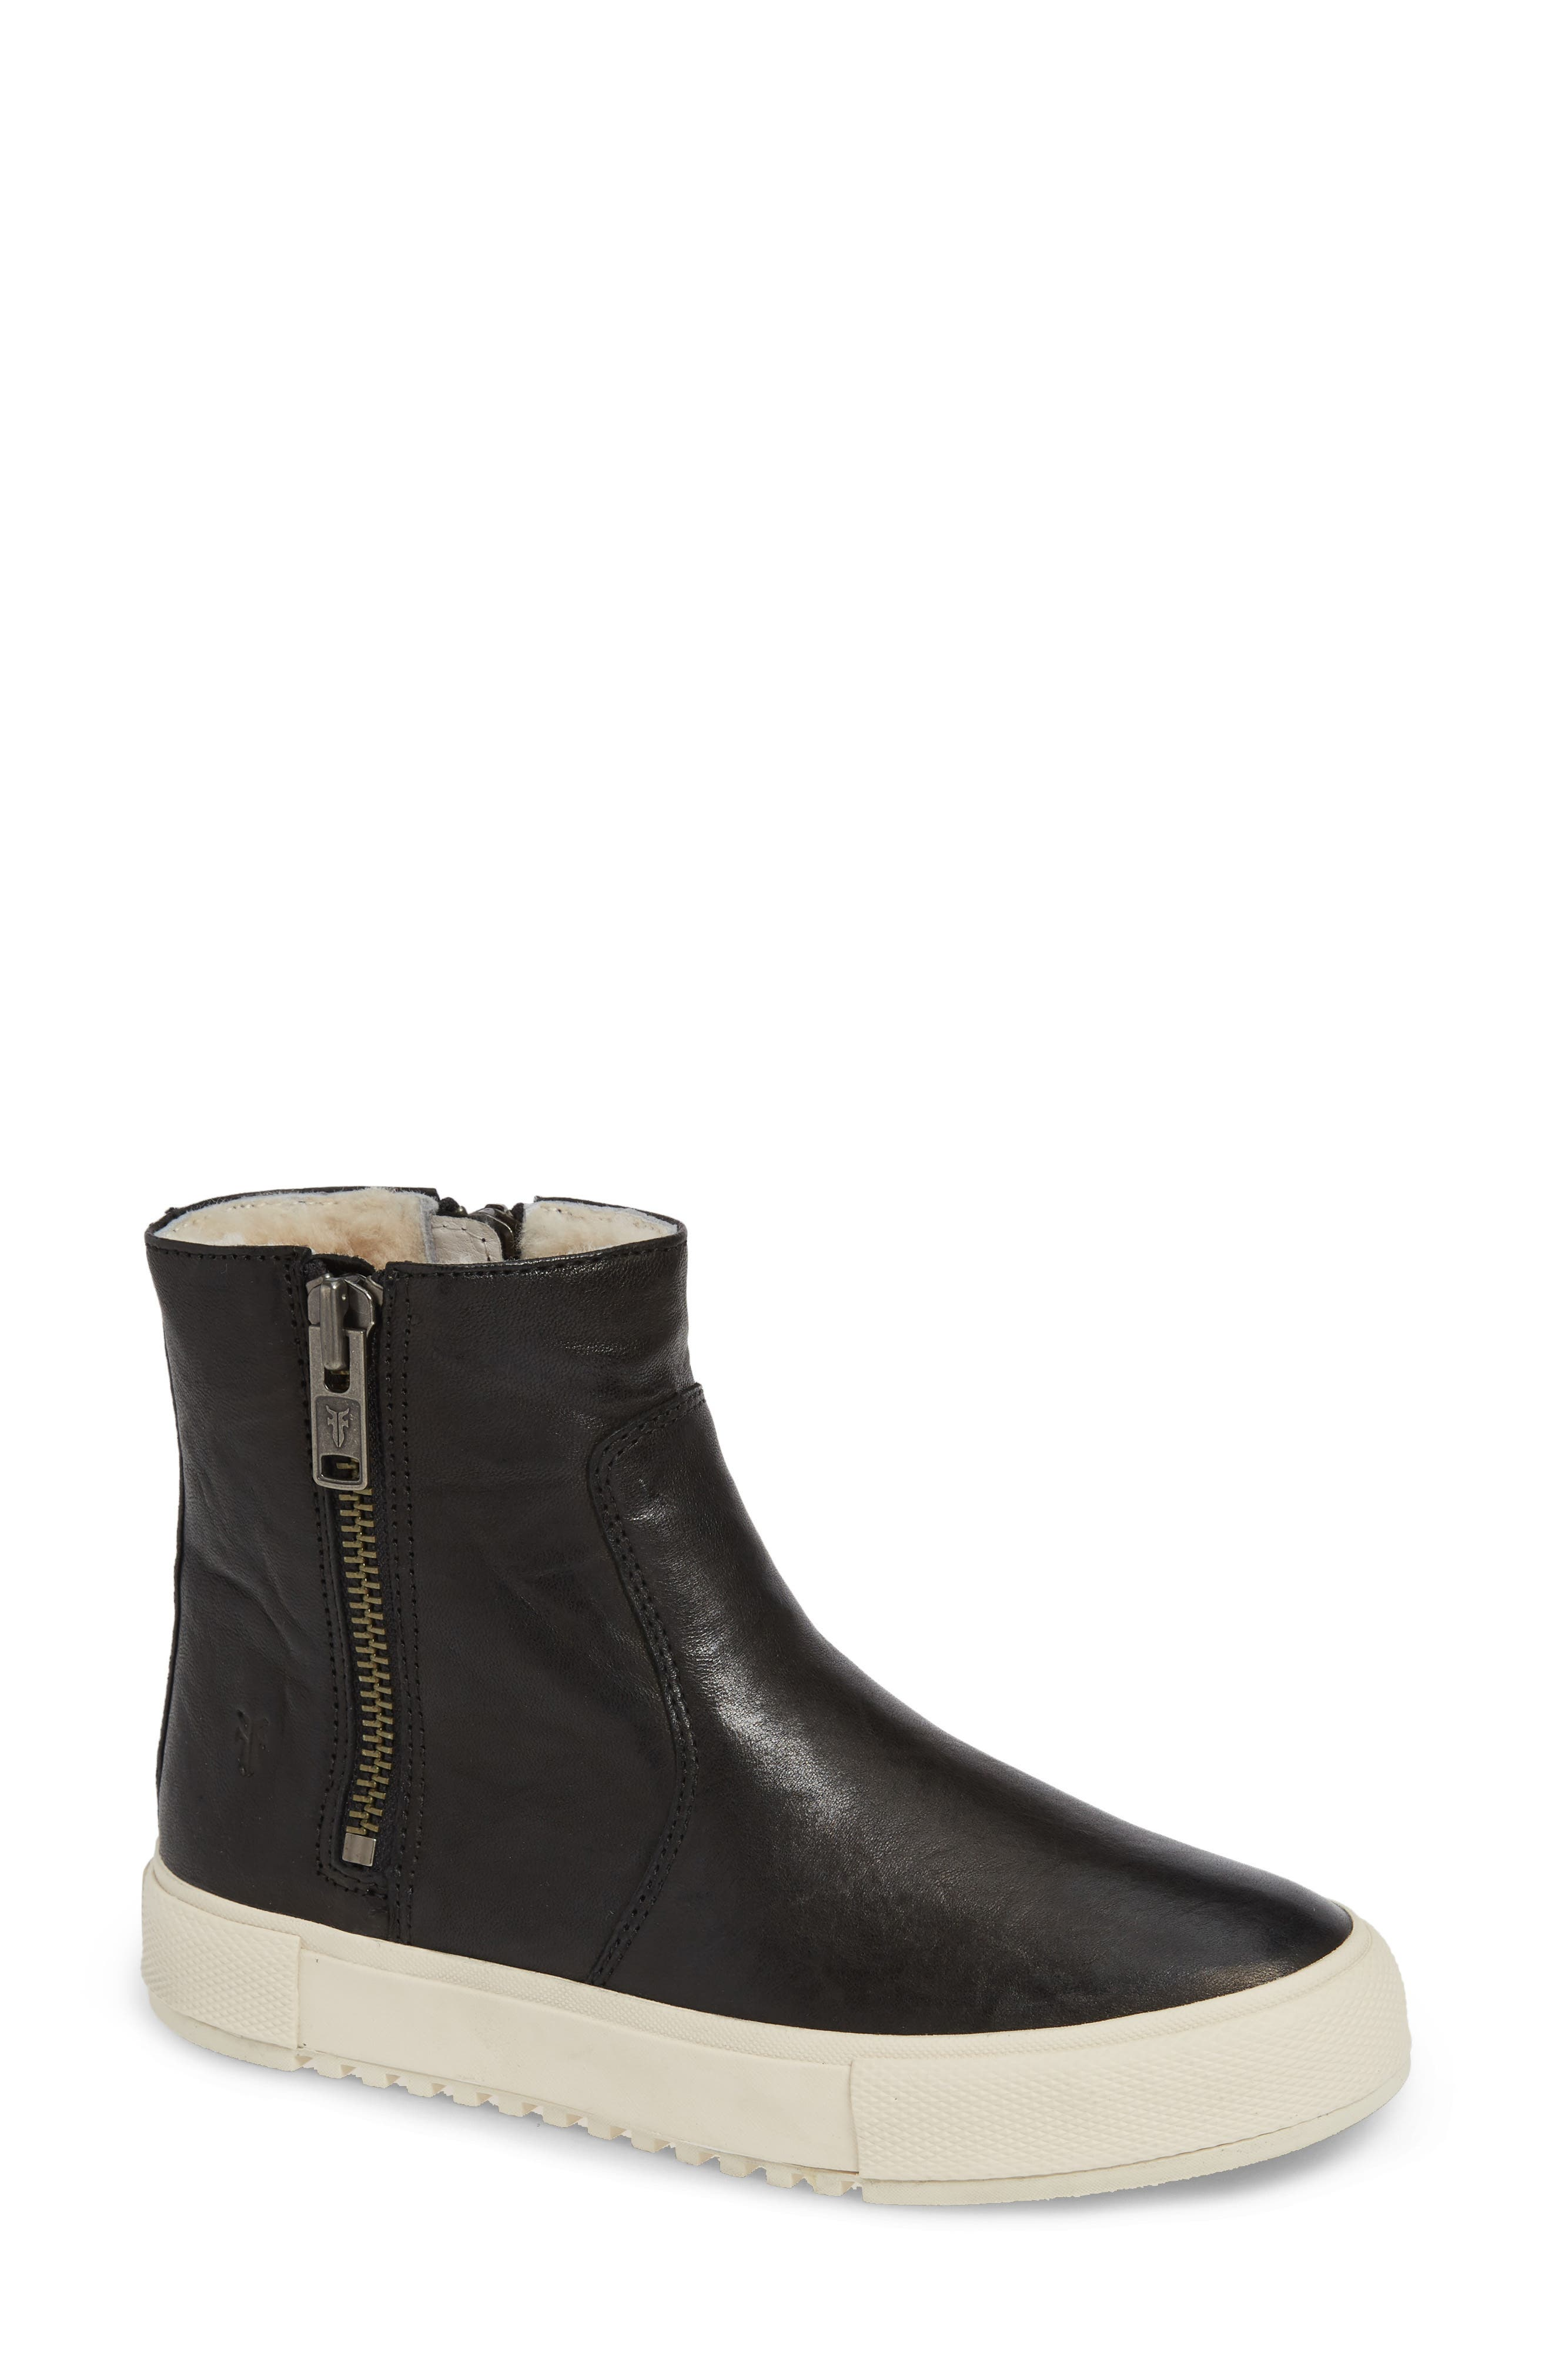 Frye Gia Genuine Shearling Lined Bootie, Black